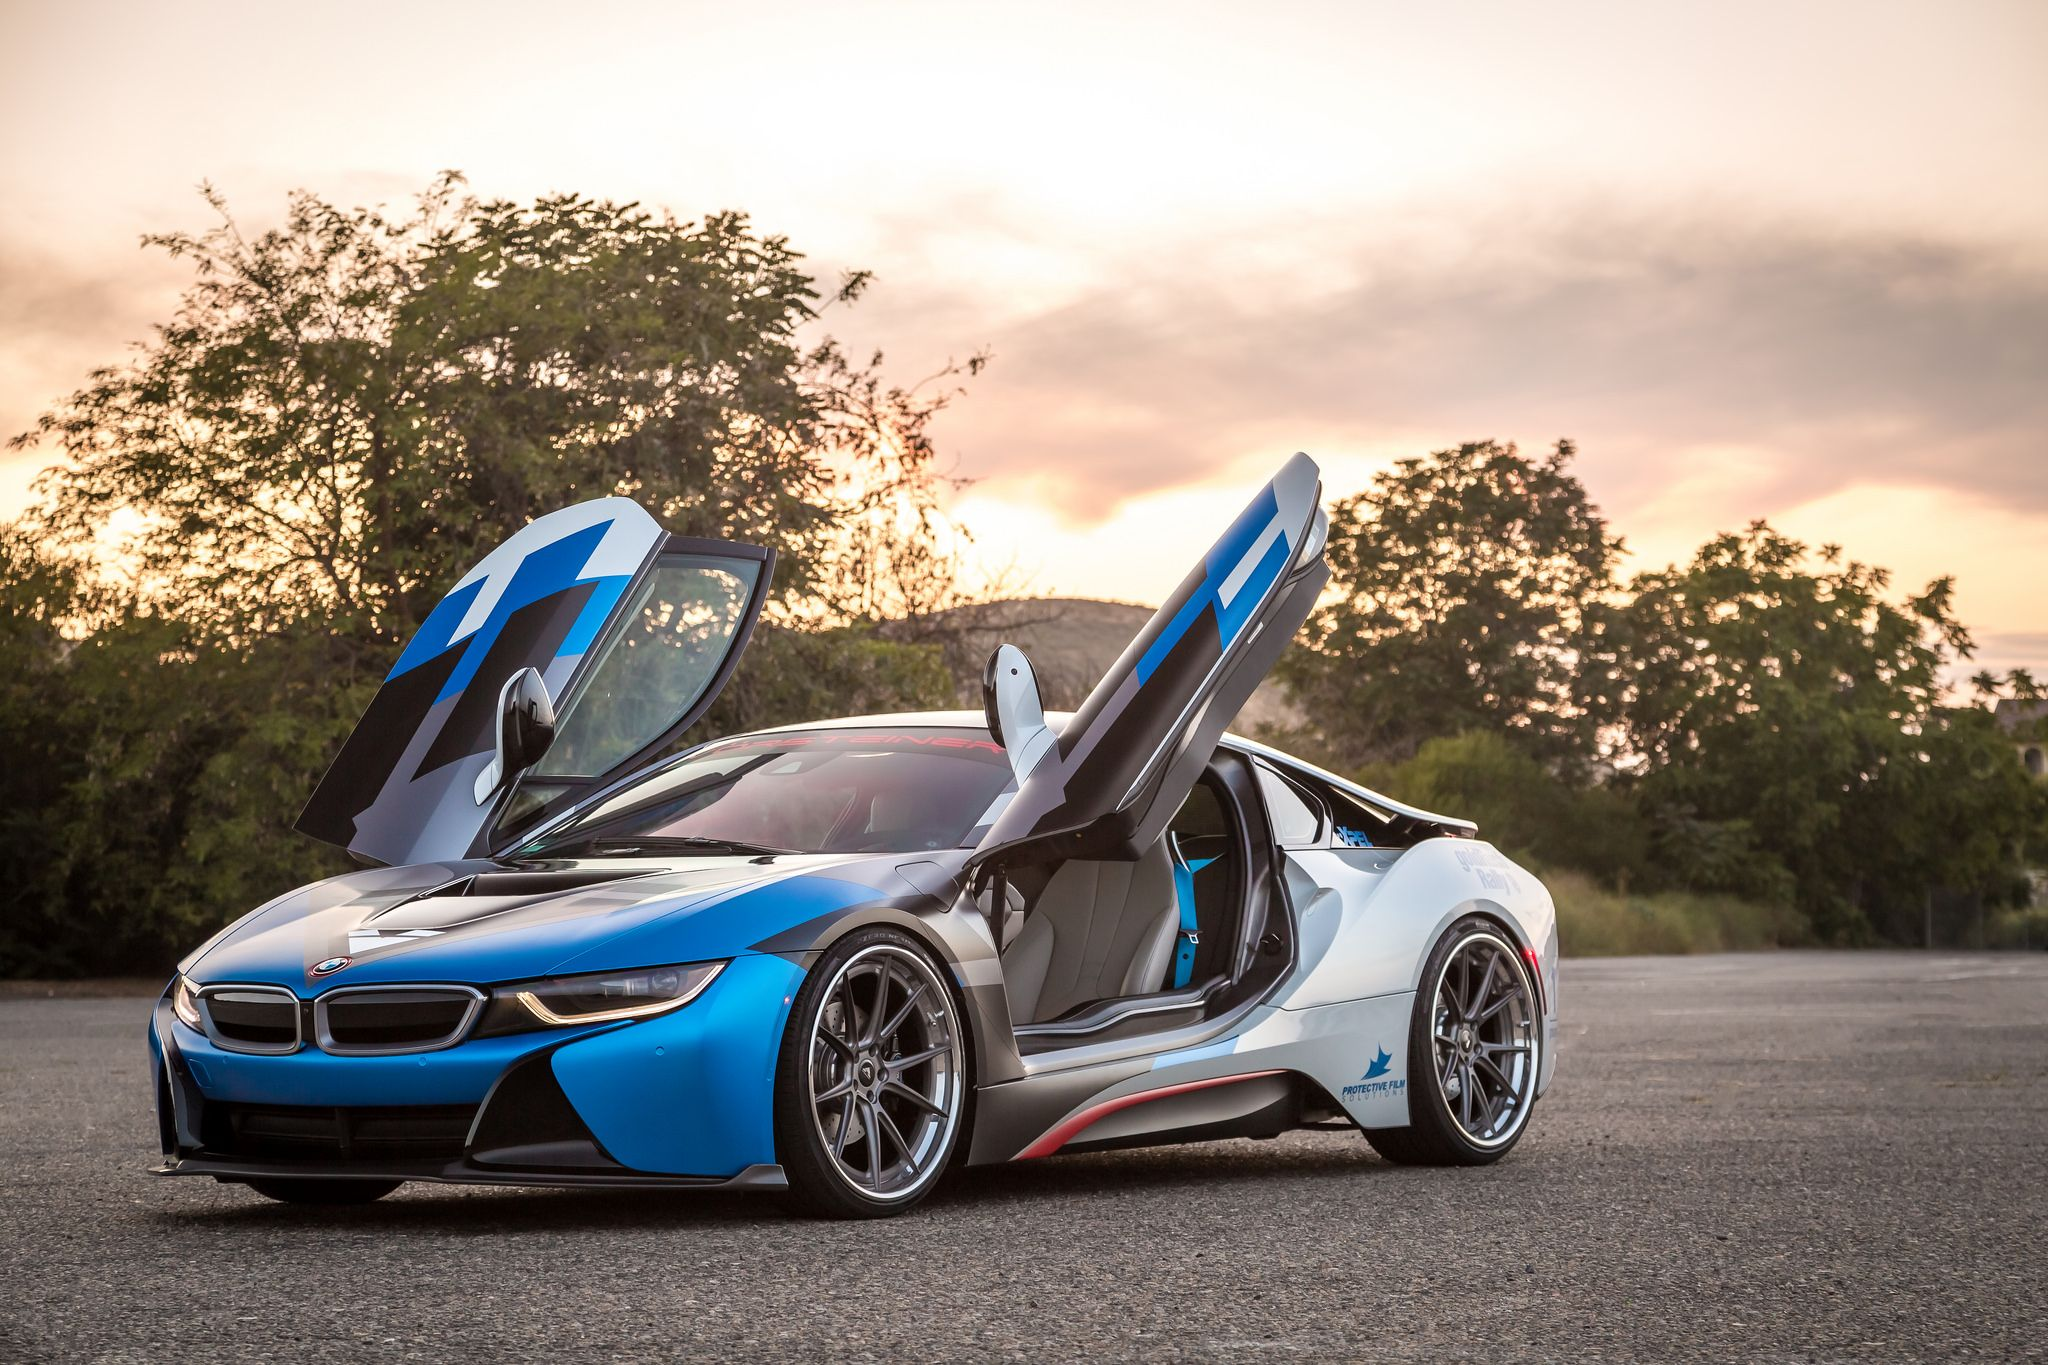 Bmw I8 Coupe Edrive Vorsteiner Tuning Electric Burn Blue